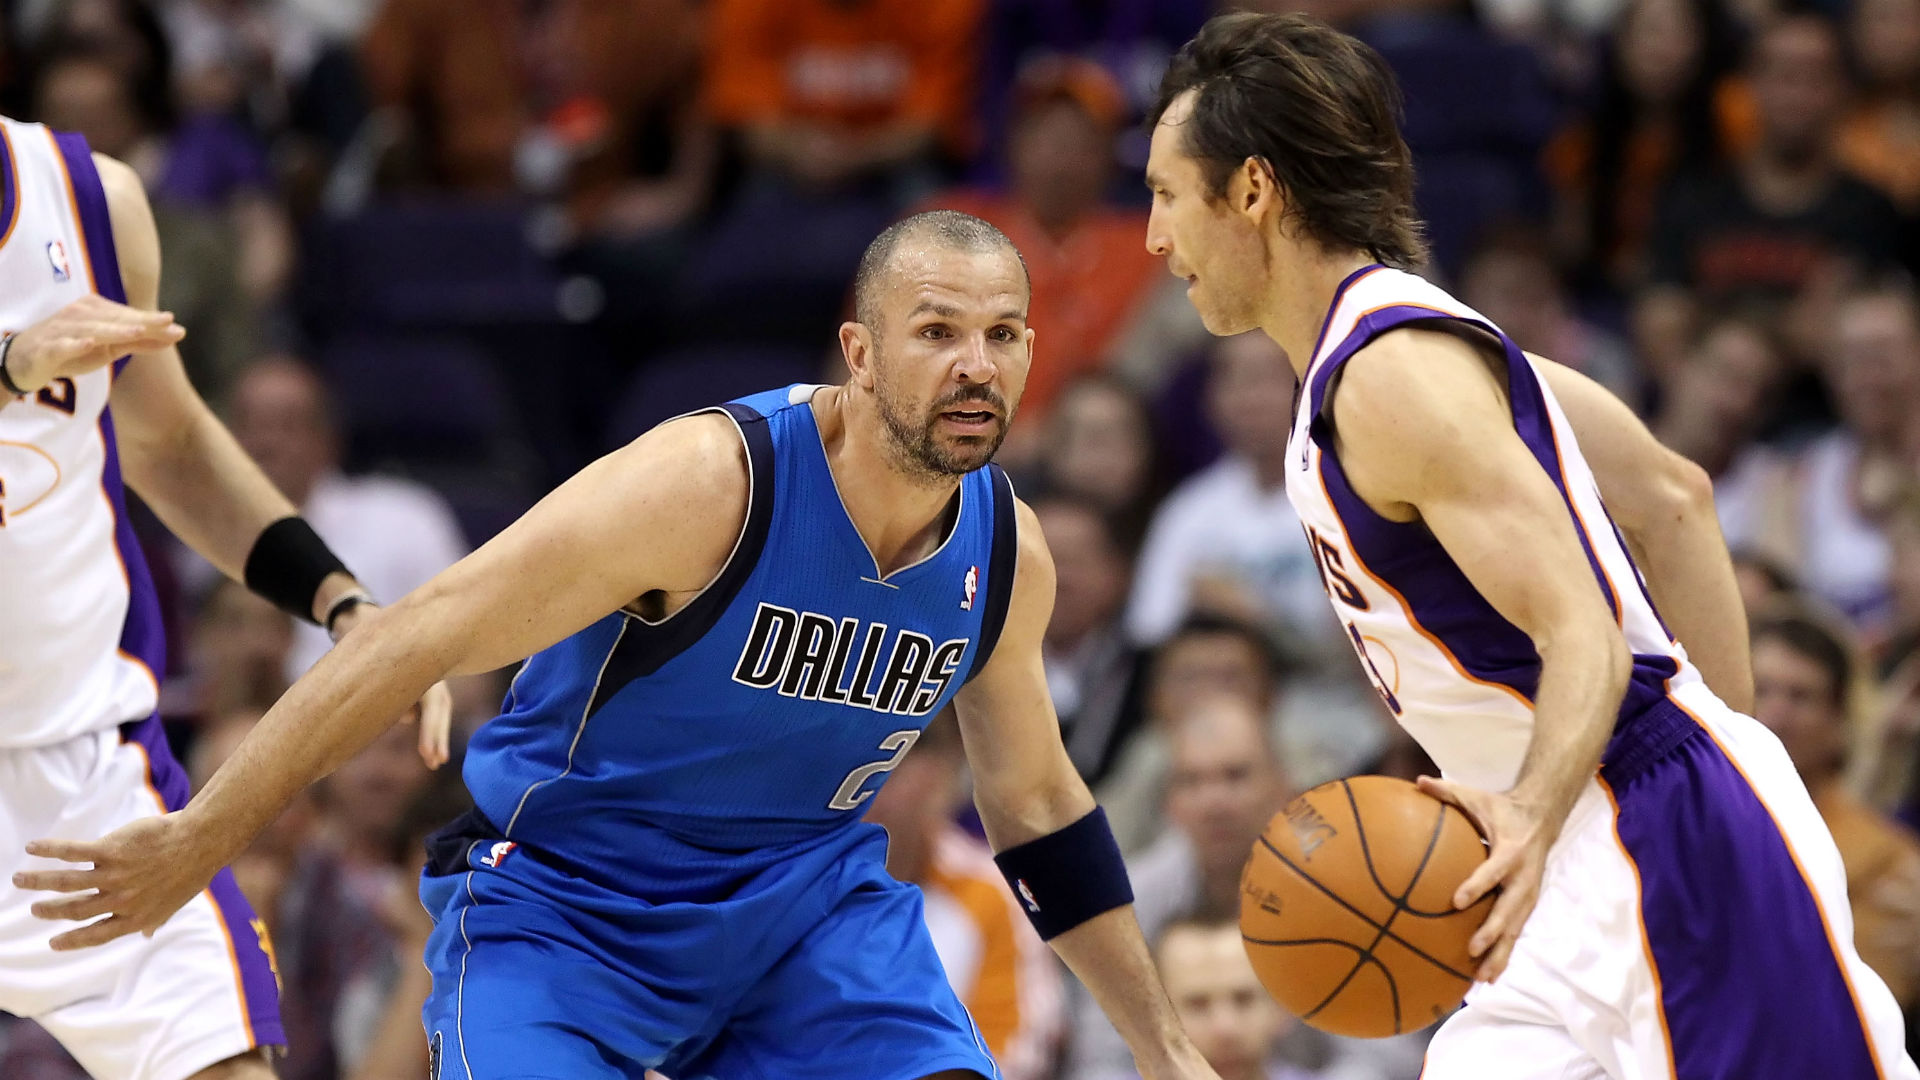 Jason Kidd and Steve Nash headed to HOF